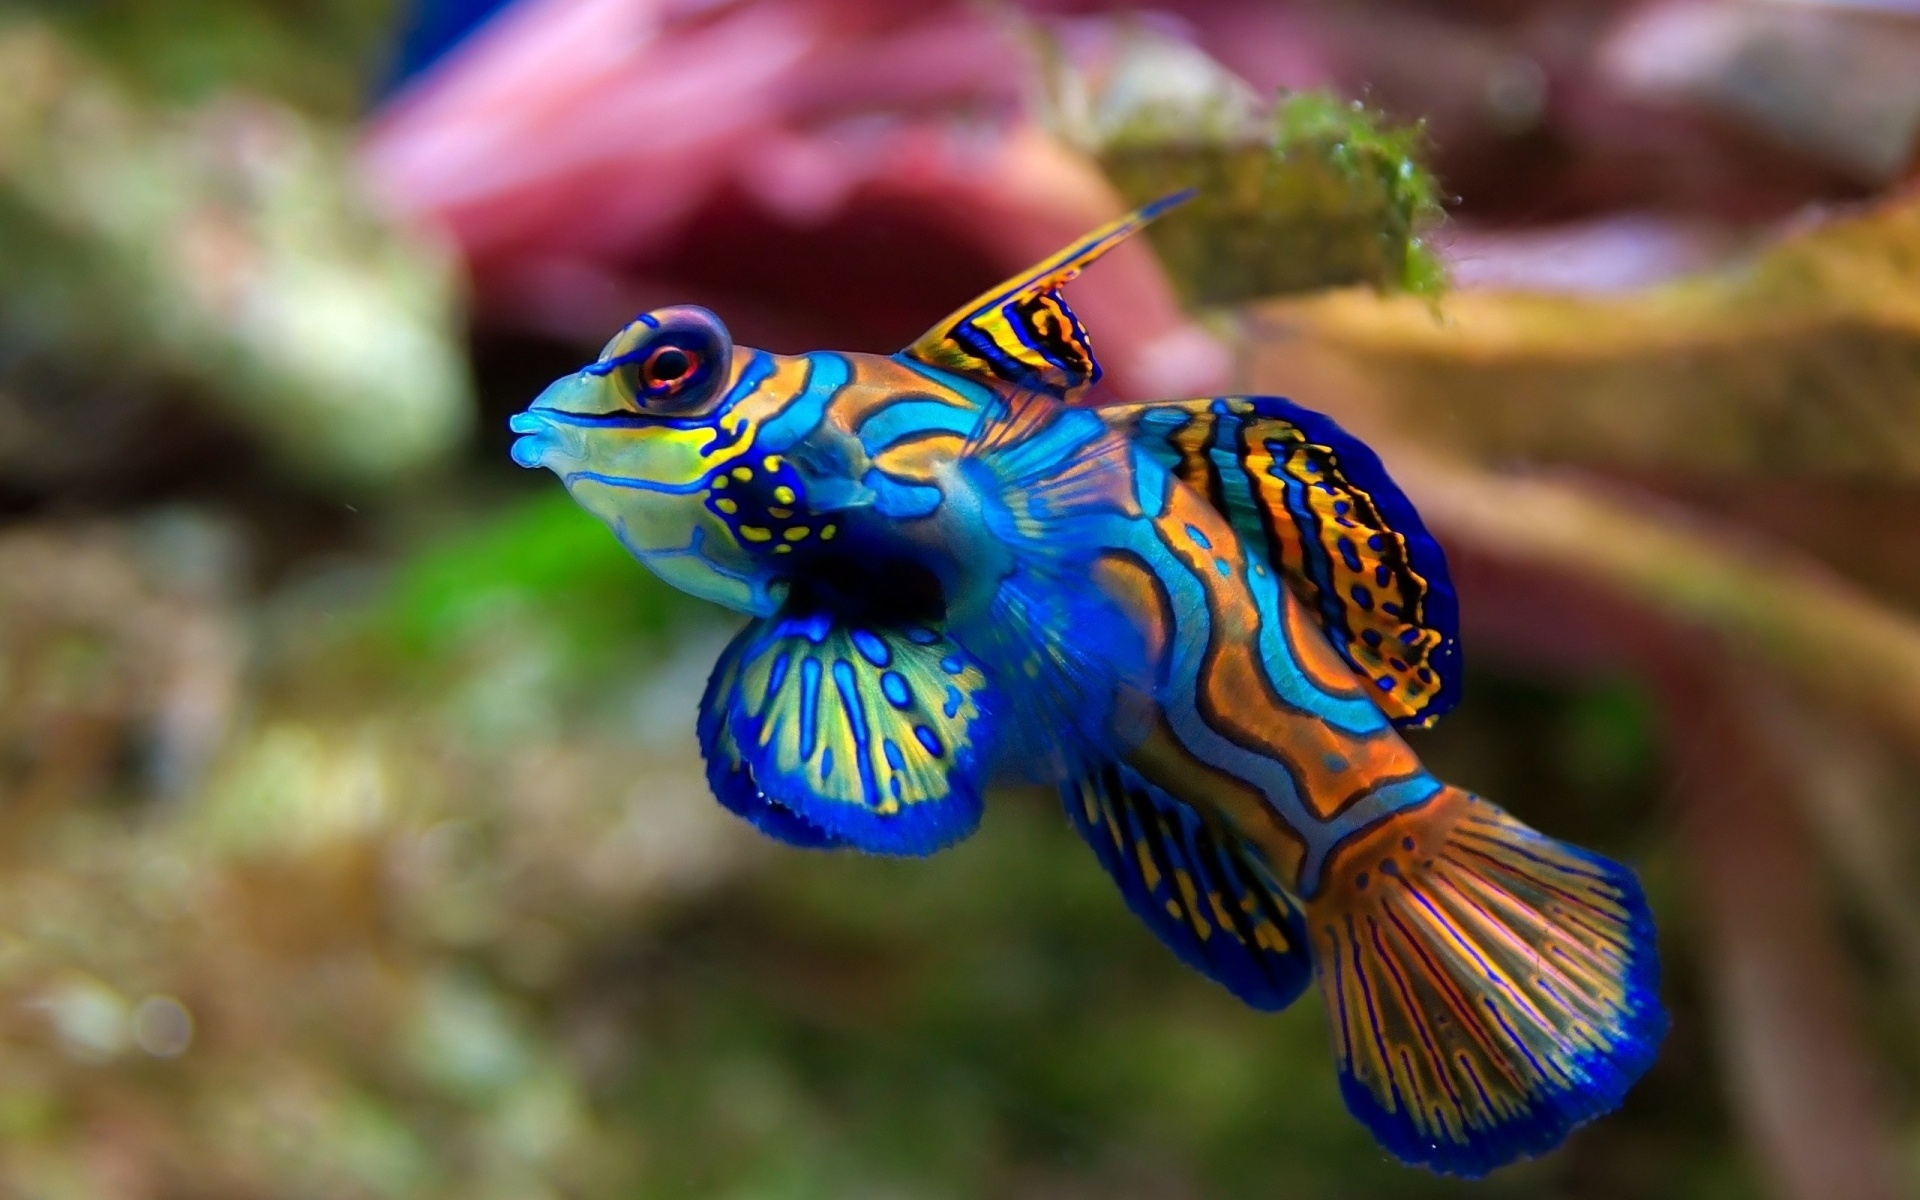 Nocturnal Mirage Images Tropical Fish Hd Wallpaper And Background